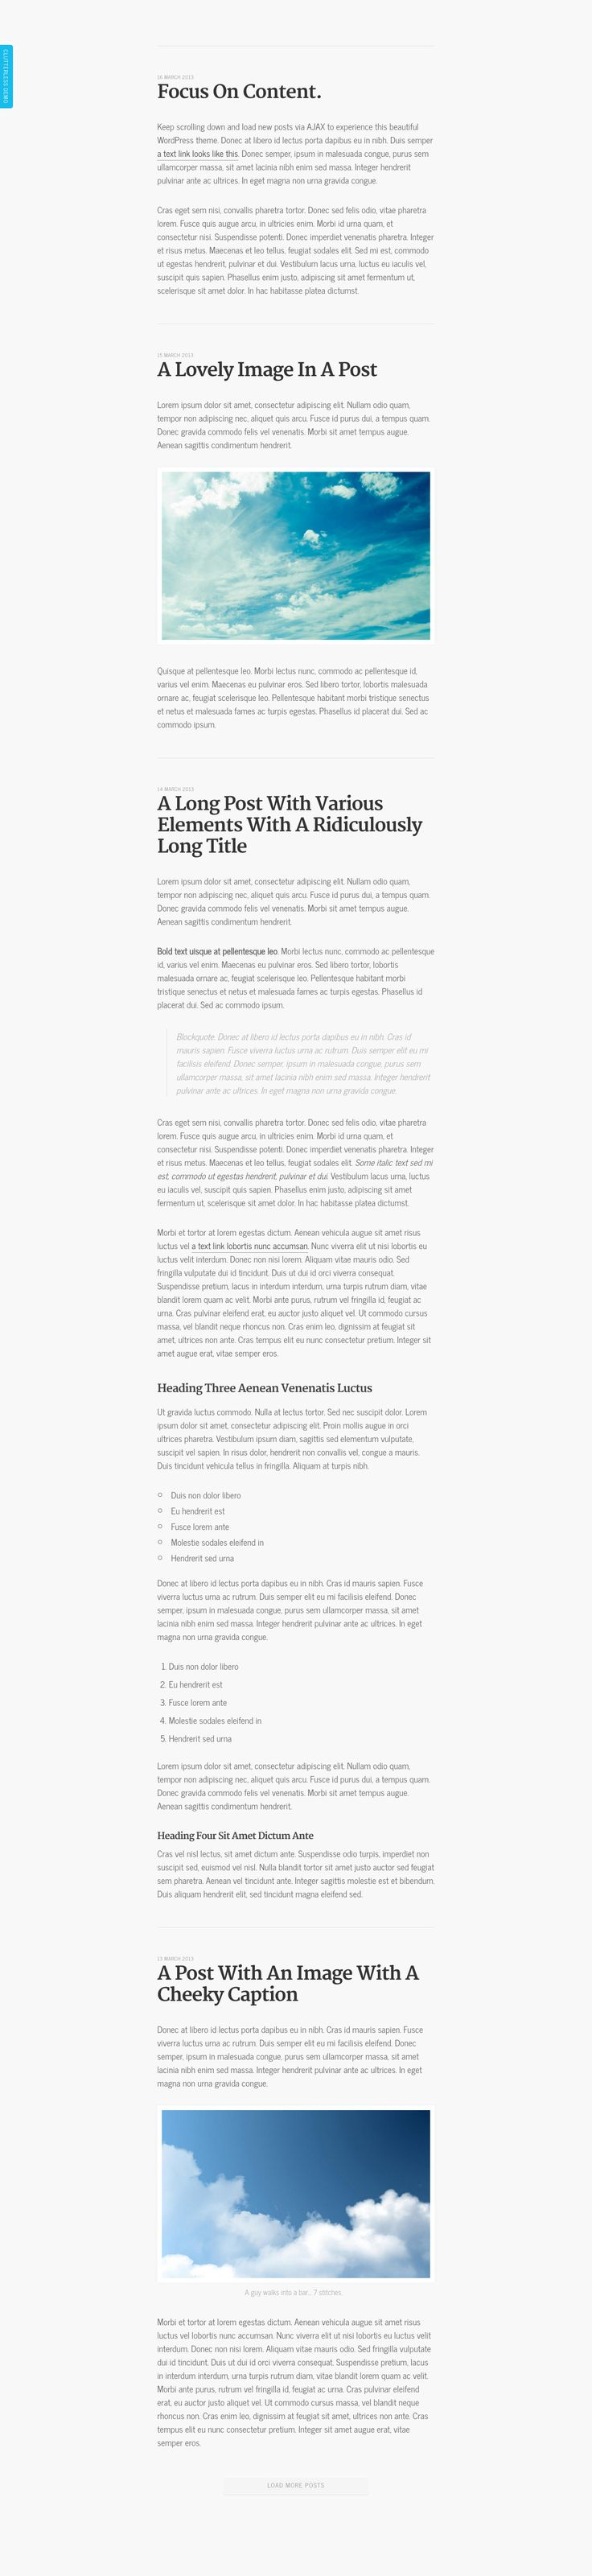 Clutterless is a minimal single-column free WordPress theme absolutely perfect for blogging.